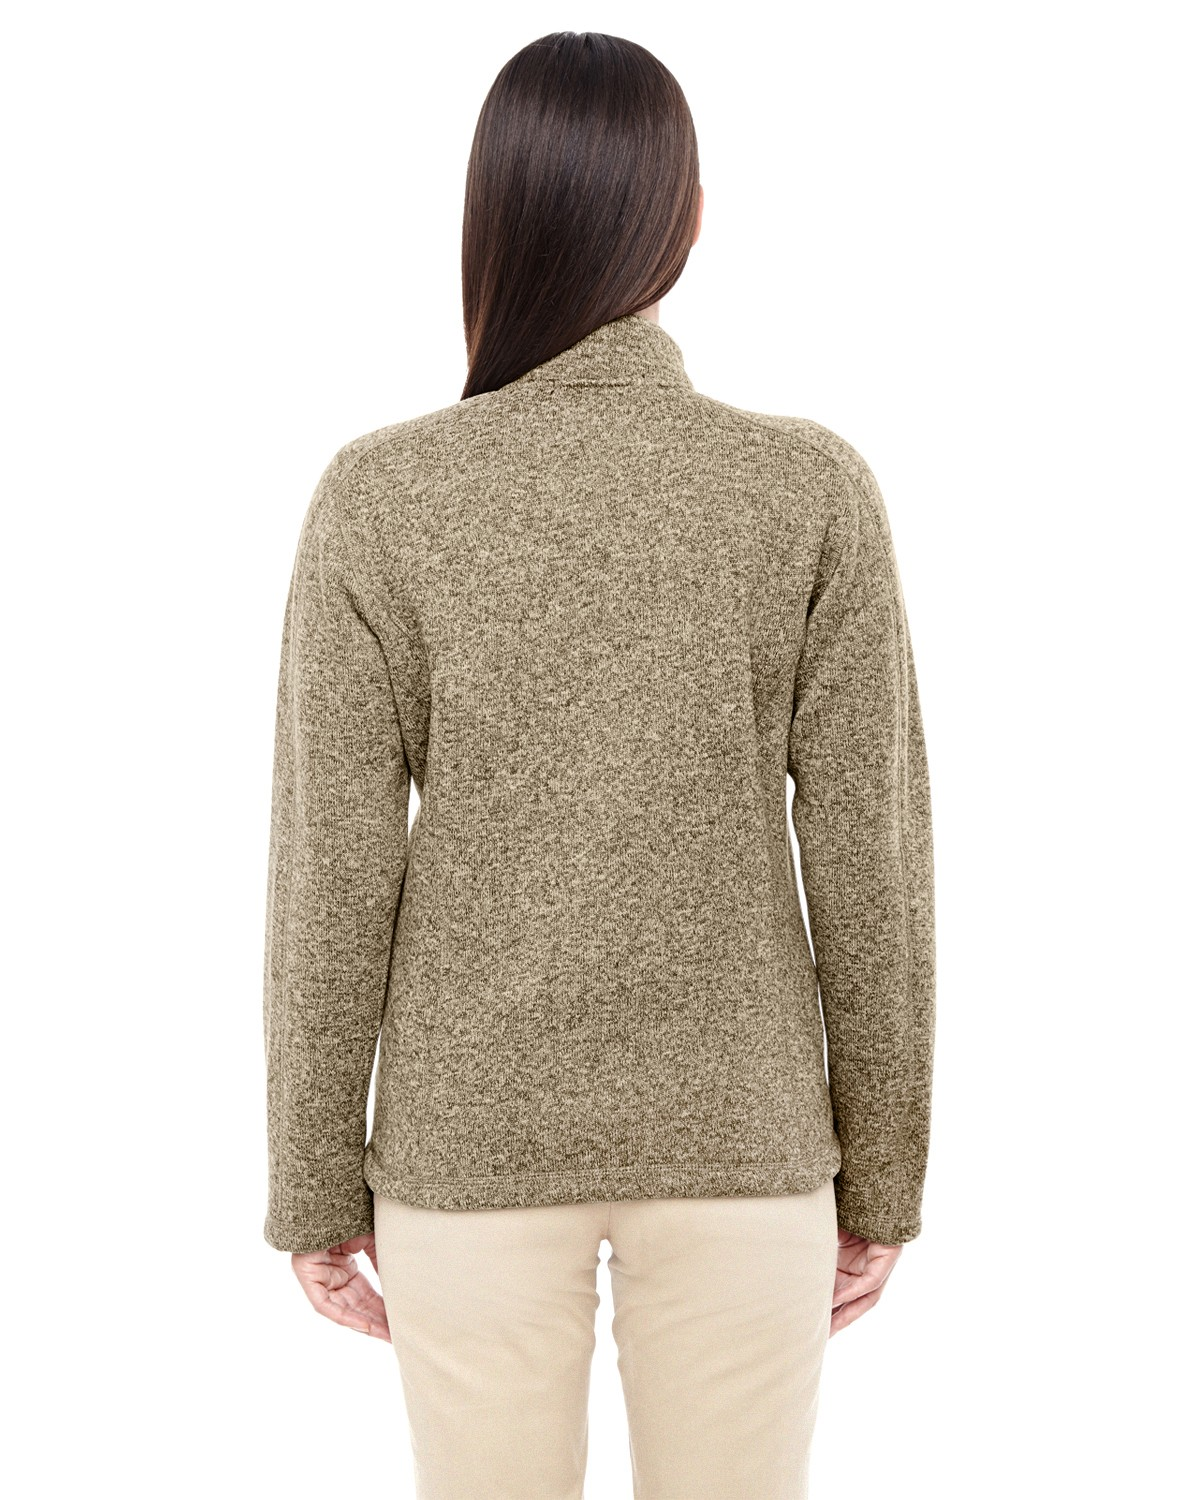 DG793W Devon & Jones KHAKI HEATHER